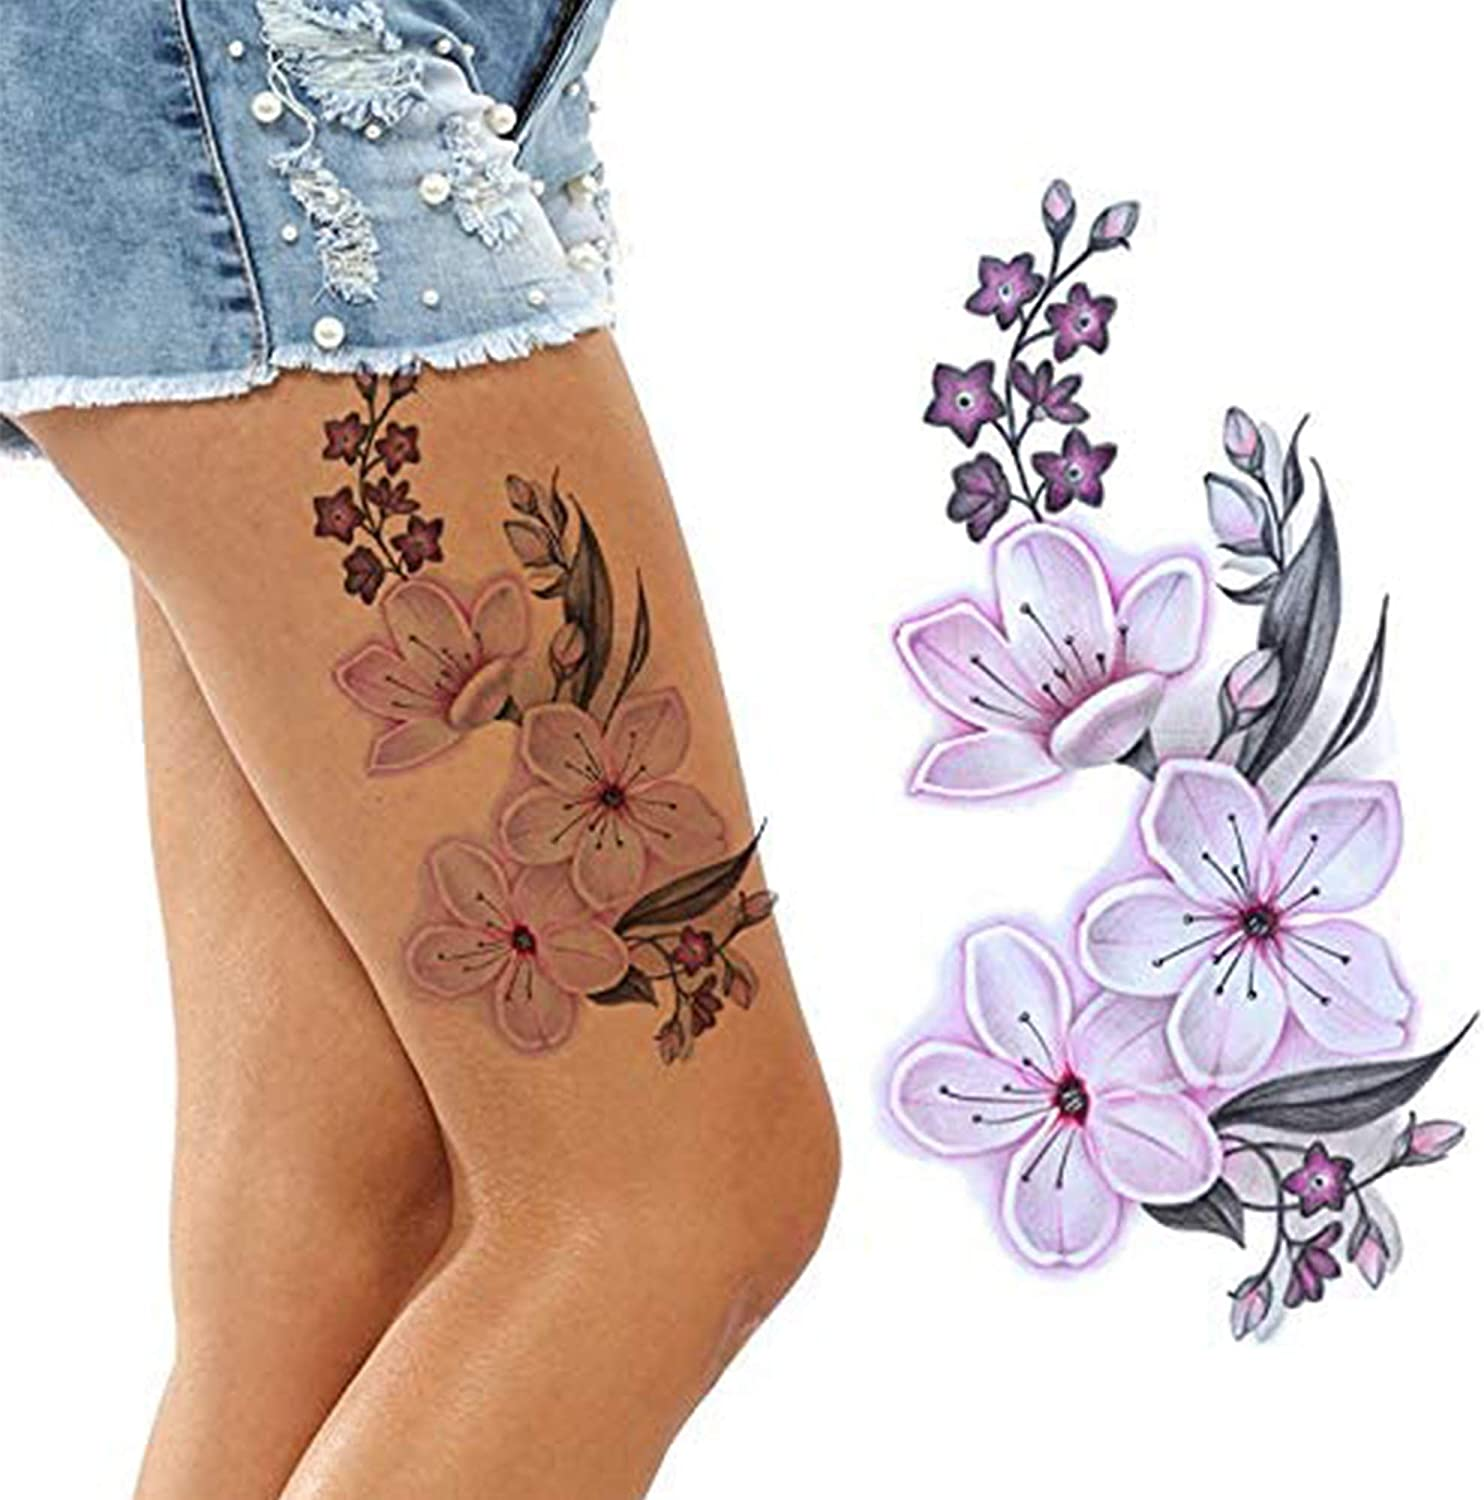 Amazon Com 2 X Sheets Of Cherry Blossom Flora Temporary Tattoos For Adult Women Kids Girls Flower Big And Small Pink White Cute Flora Sticker Arm Legs Adult Temp Tatoo On Transfer Paper